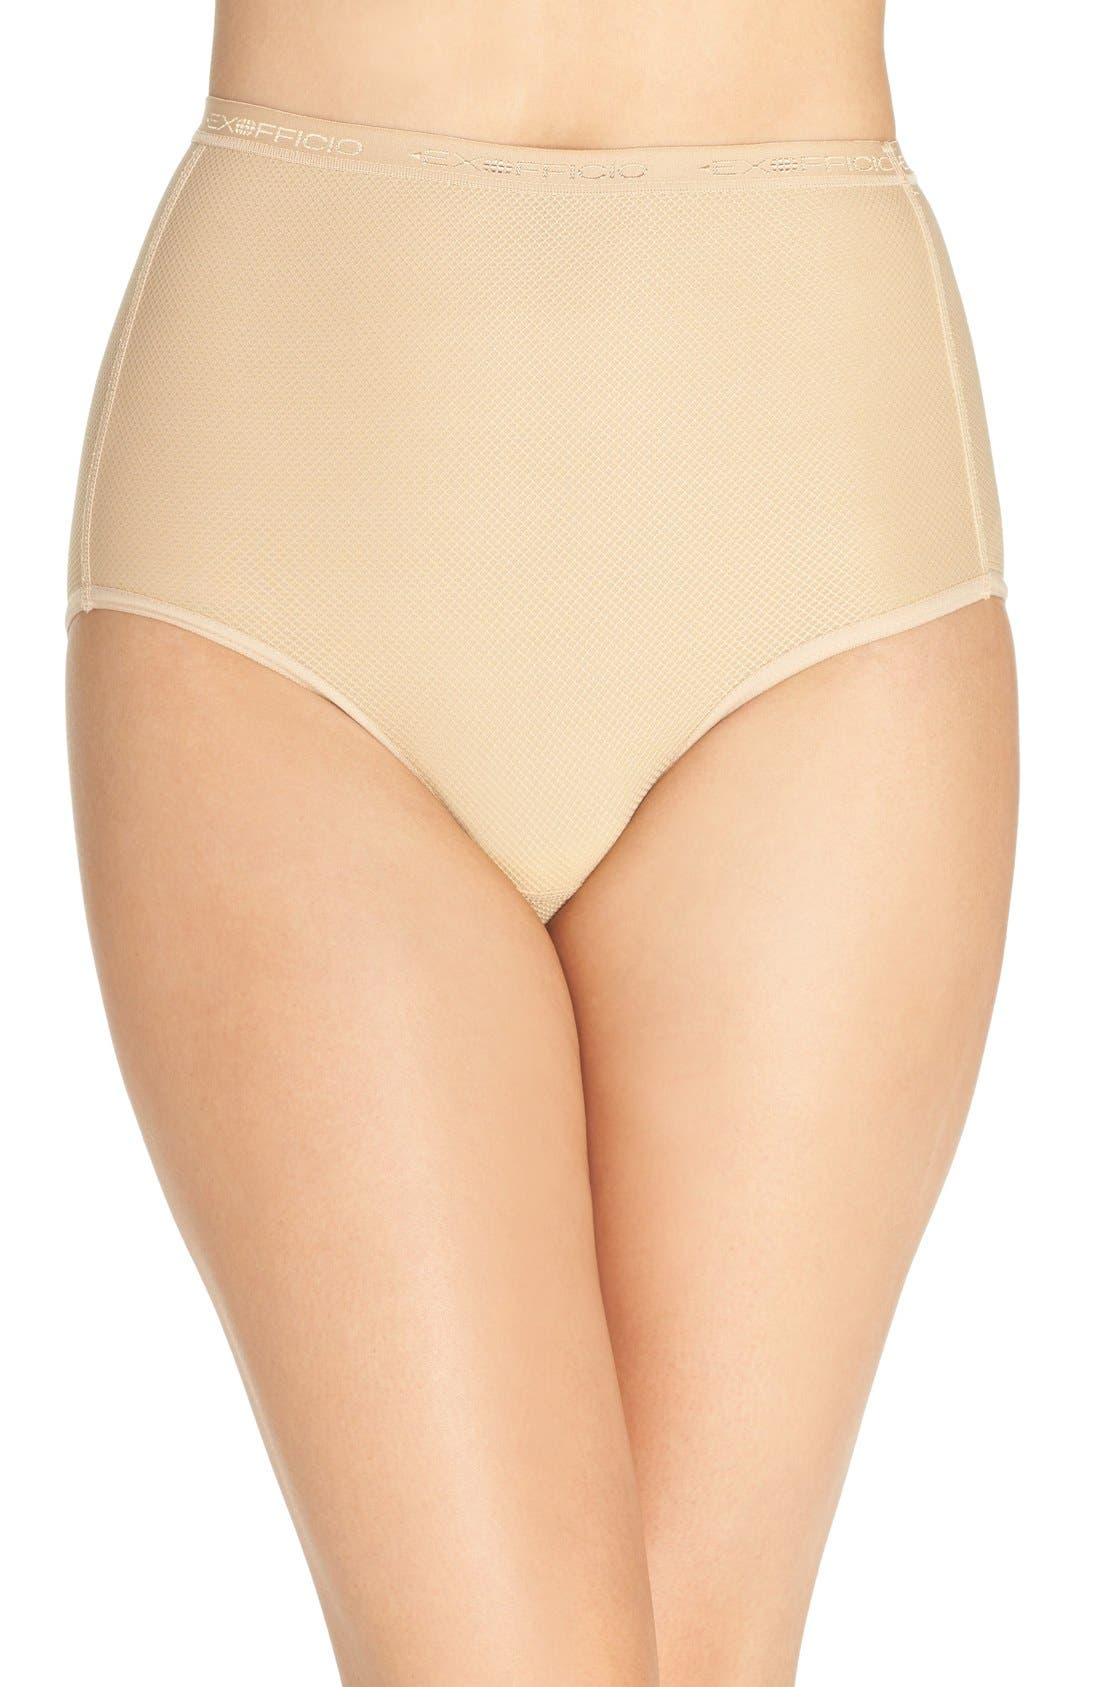 Give-N-Go<sup>®</sup> High Waist Sport Briefs,                             Main thumbnail 1, color,                             Nude